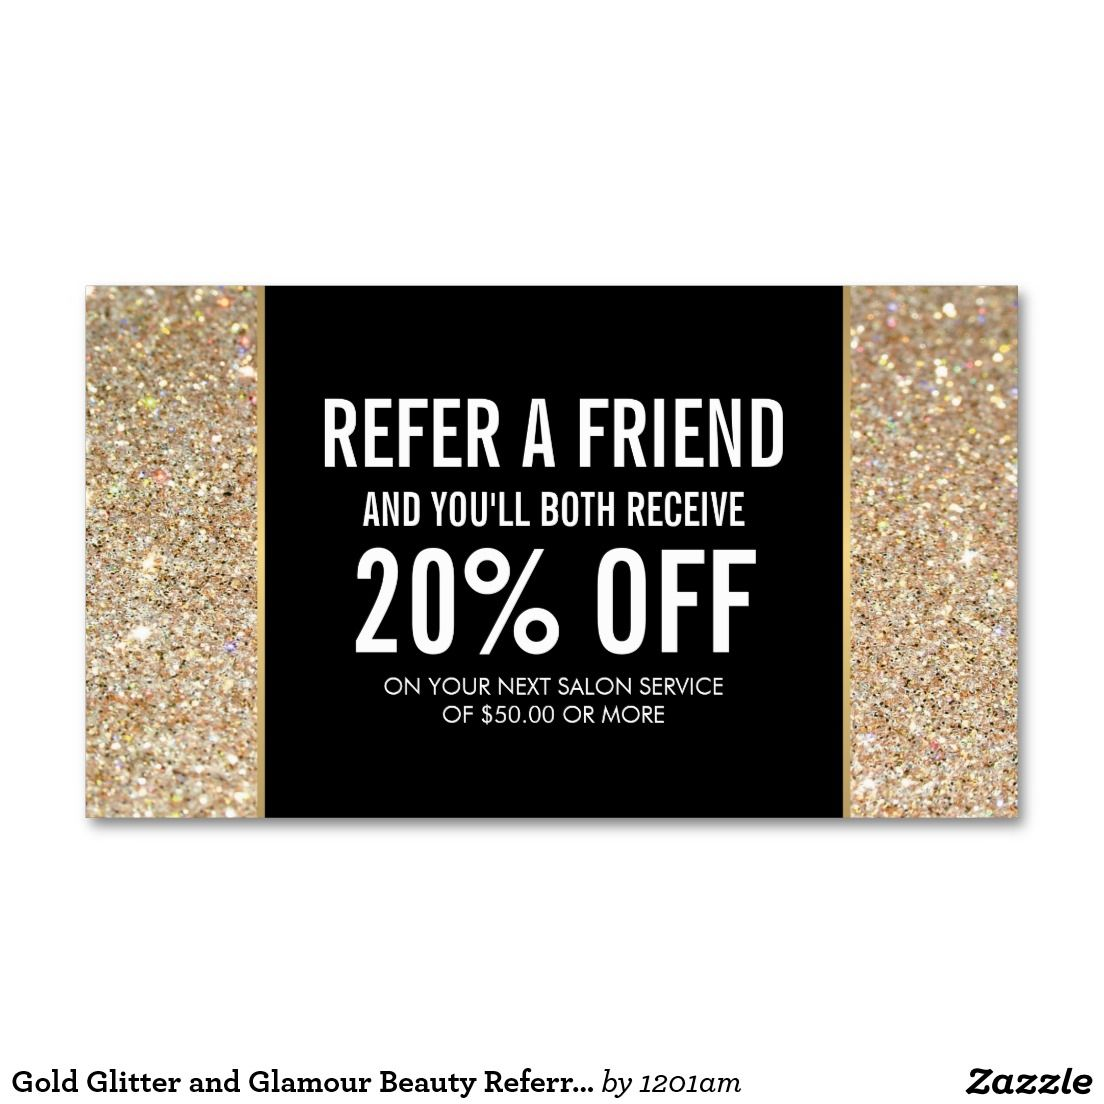 Gold Glitter and Glamour Beauty Referral Card | Pinterest | Glamour ...